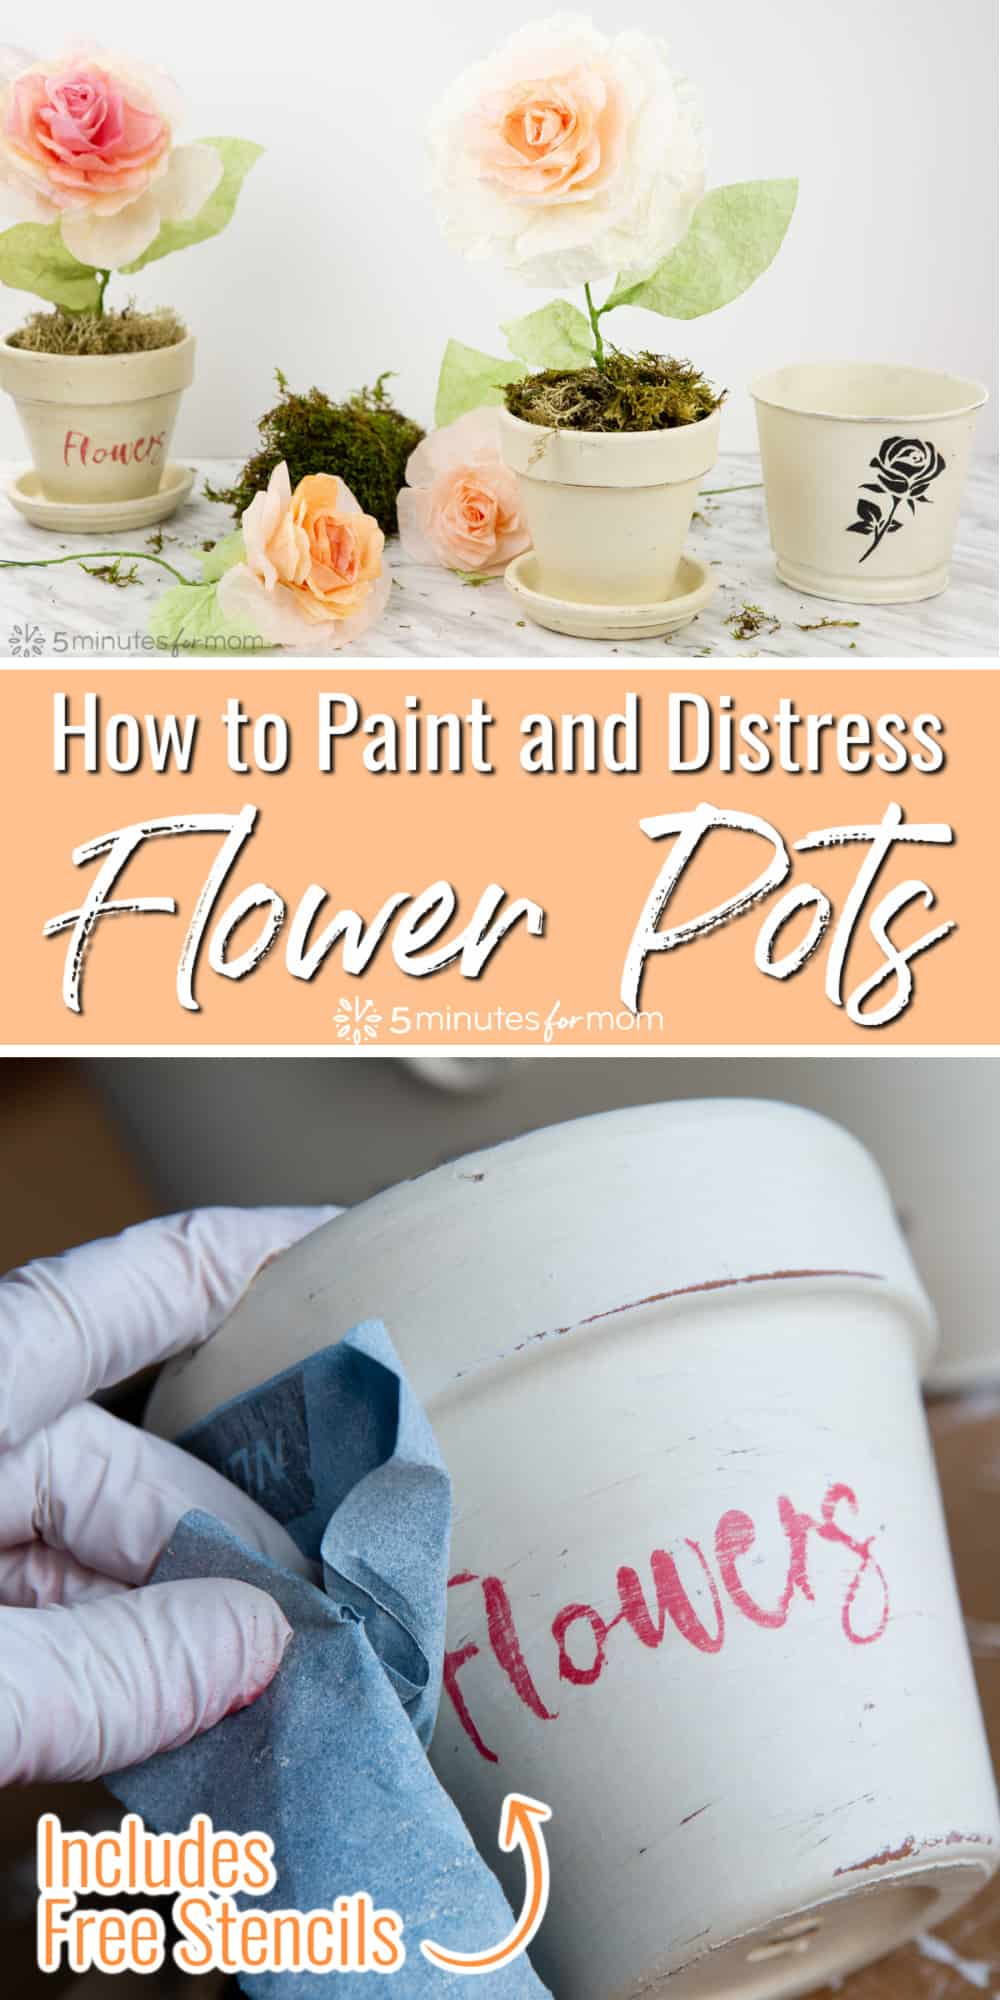 How to Paint and Distress Flower Pots